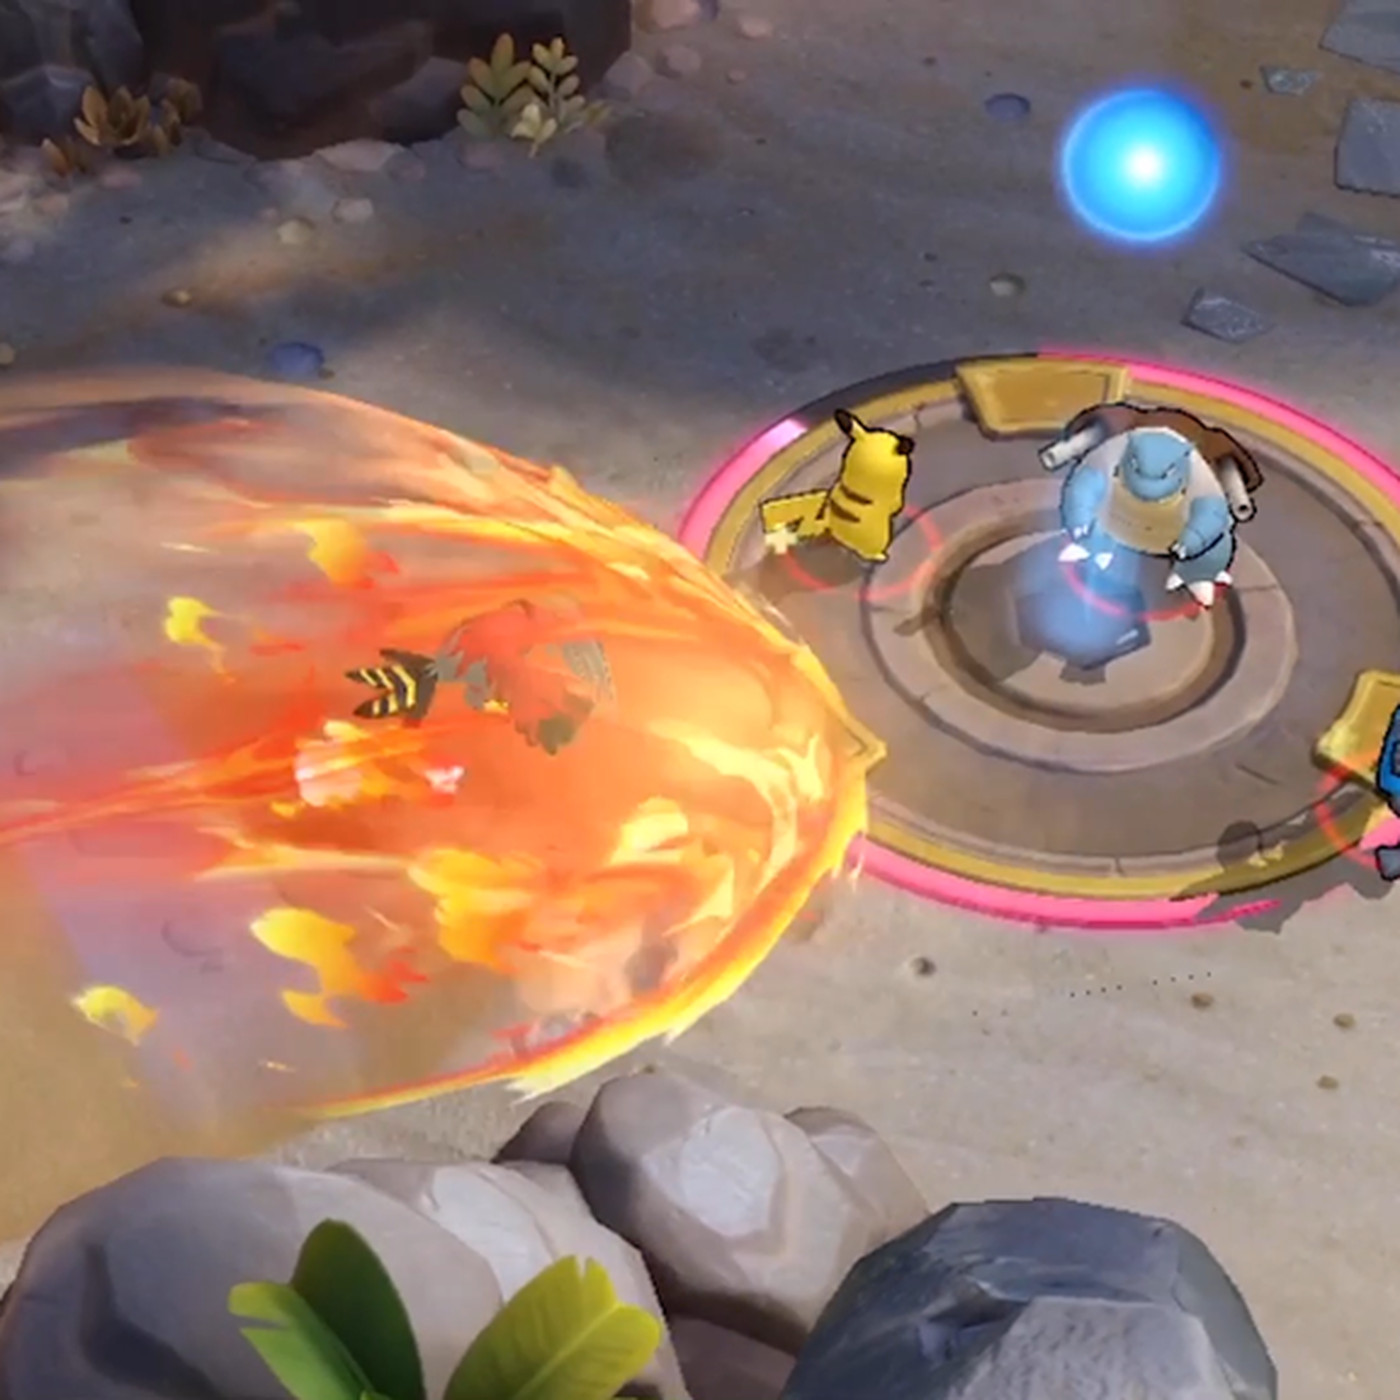 Pokémon Unite could open competitive gaming to a whole new ...